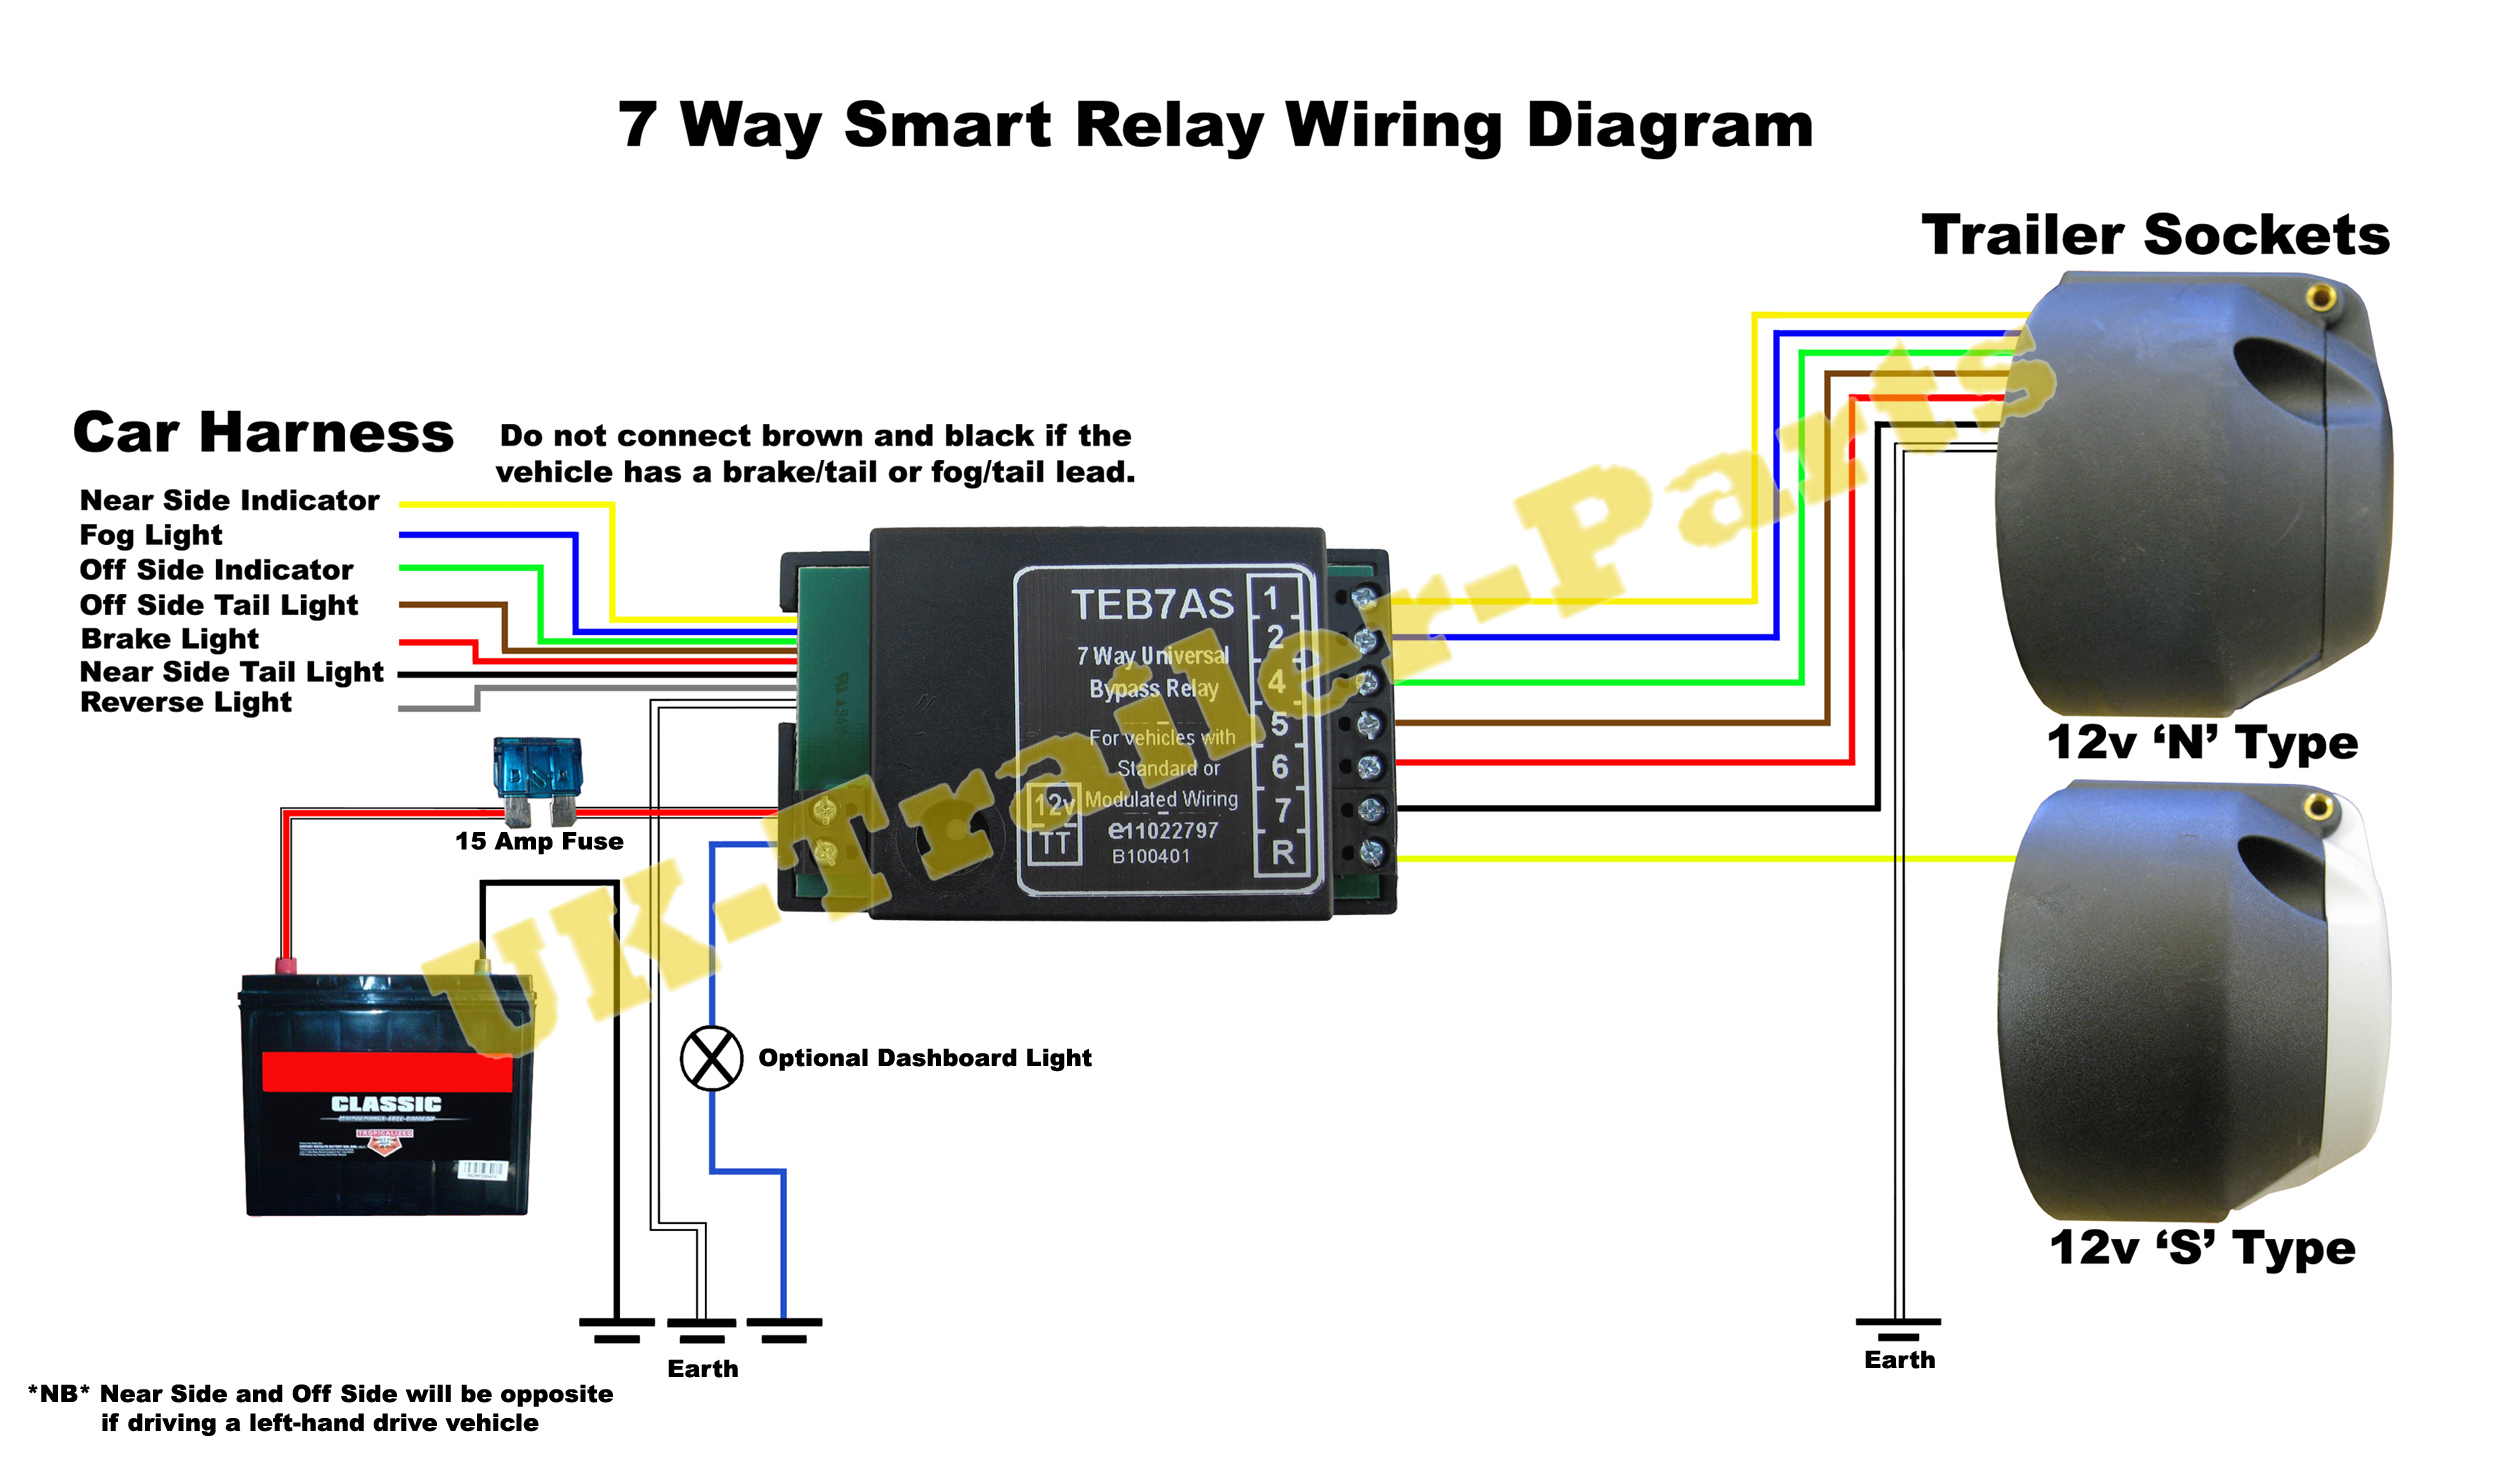 smart relay wiring diagram2 7 way universal bypass relay wiring diagram uk trailer parts vauxhall insignia towbar wiring diagram at readyjetset.co